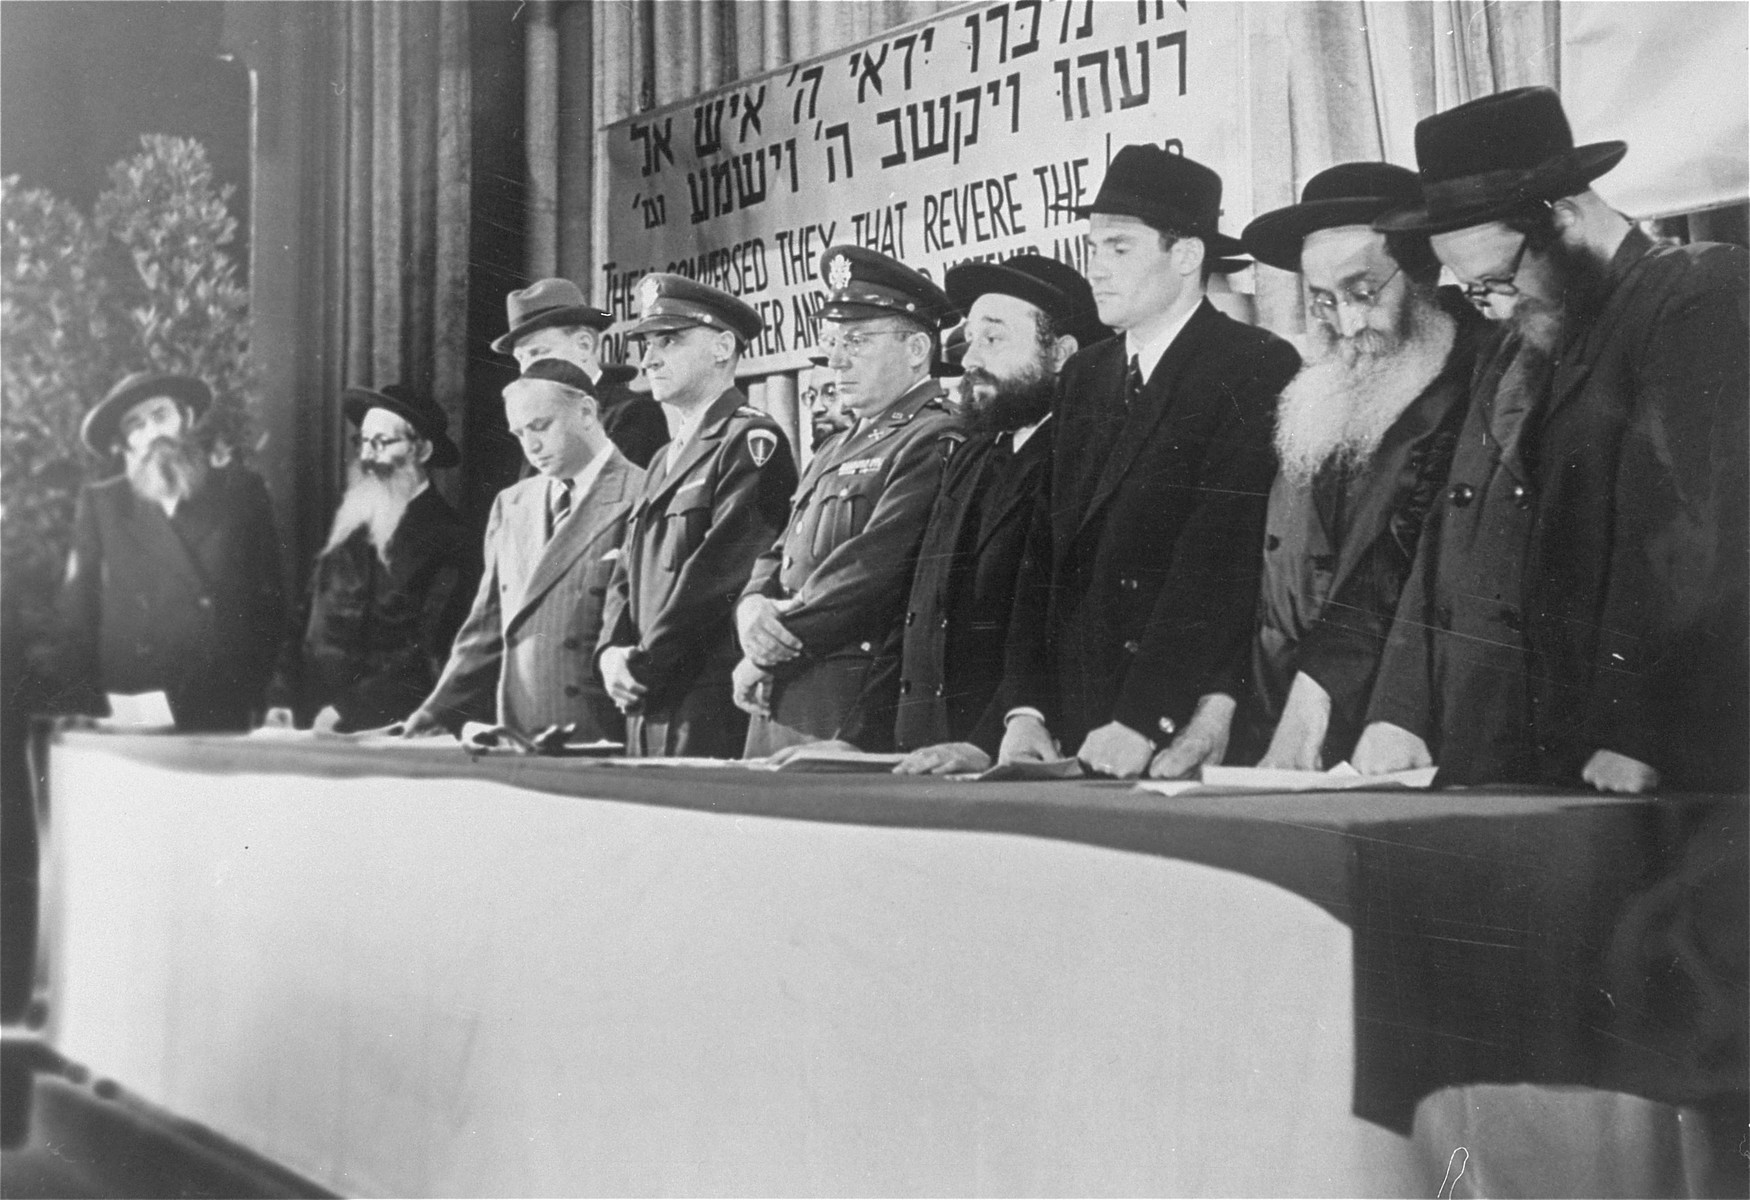 American military officers stand at the dais with a group of orthodox rabbis at a DP conference in Frankfurt.